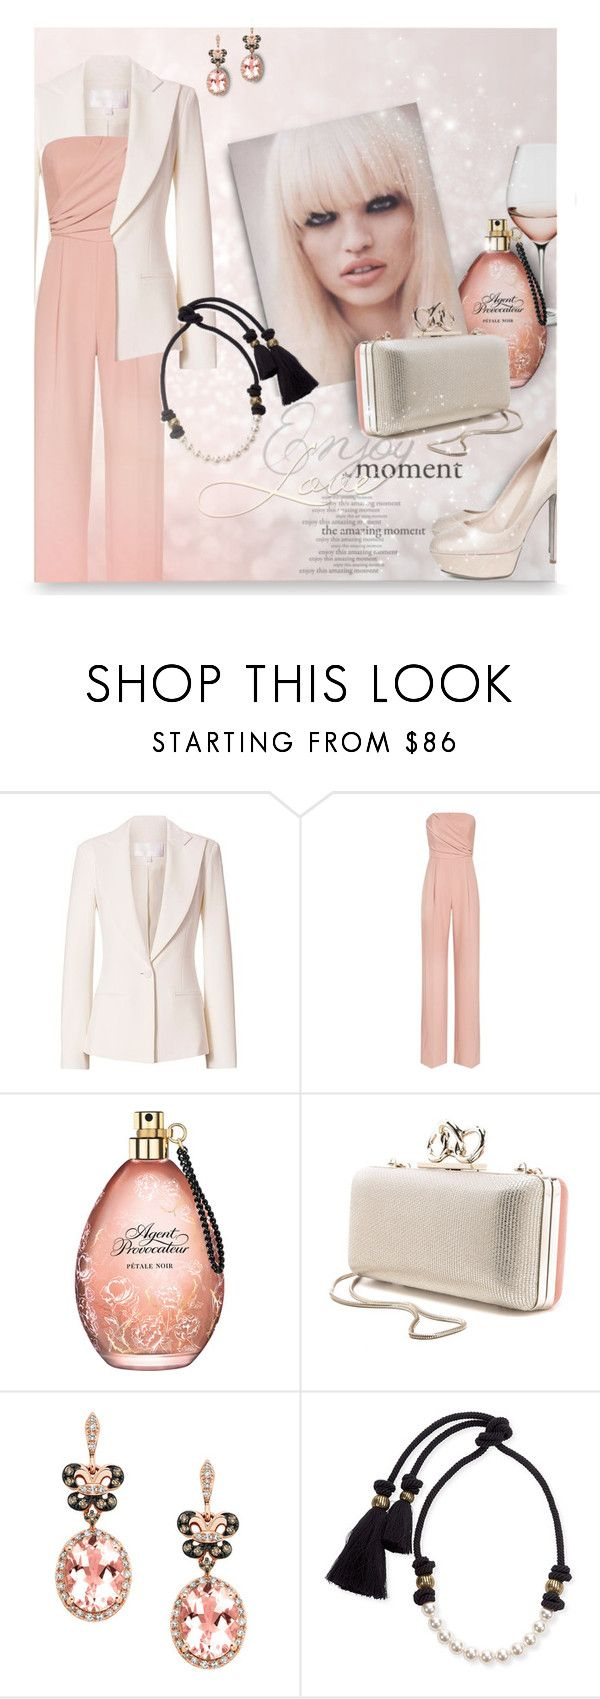 """Light tender"" by kseniz13 ❤ liked on Polyvore featuring Cushnie Et Ochs, Reiss, Agent Provocateur, Diane Von Furstenberg, Effy Jewelry, Lanvin, Sergio Rossi, outfit, Elegance and jumpsuit"